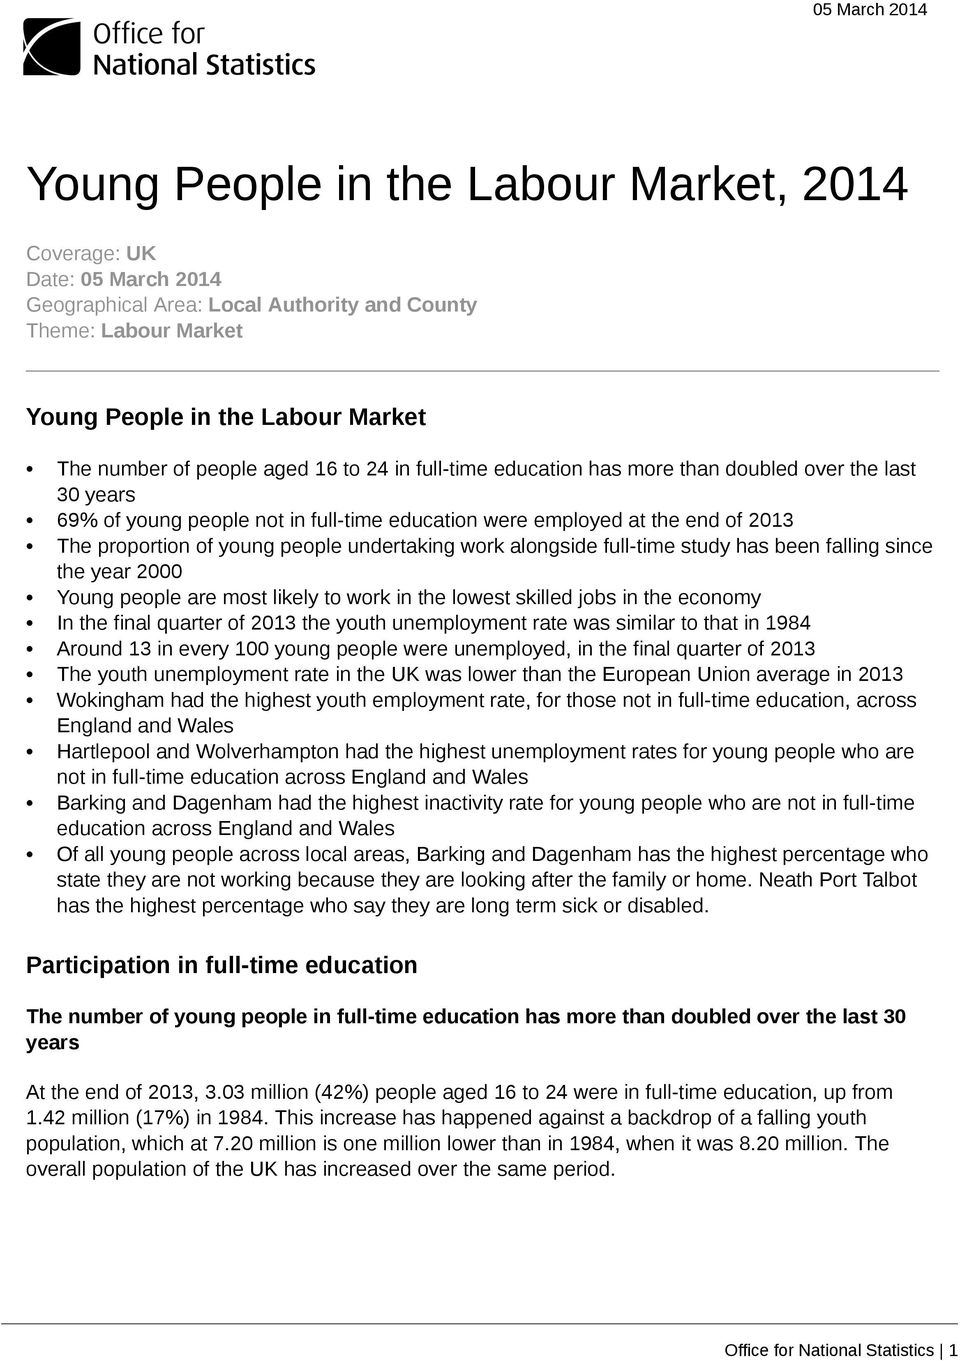 work alongside full-time study has been falling since the year 2000 Young people are most likely to work in the lowest skilled jobs in the economy In the final quarter of 2013 the youth unemployment